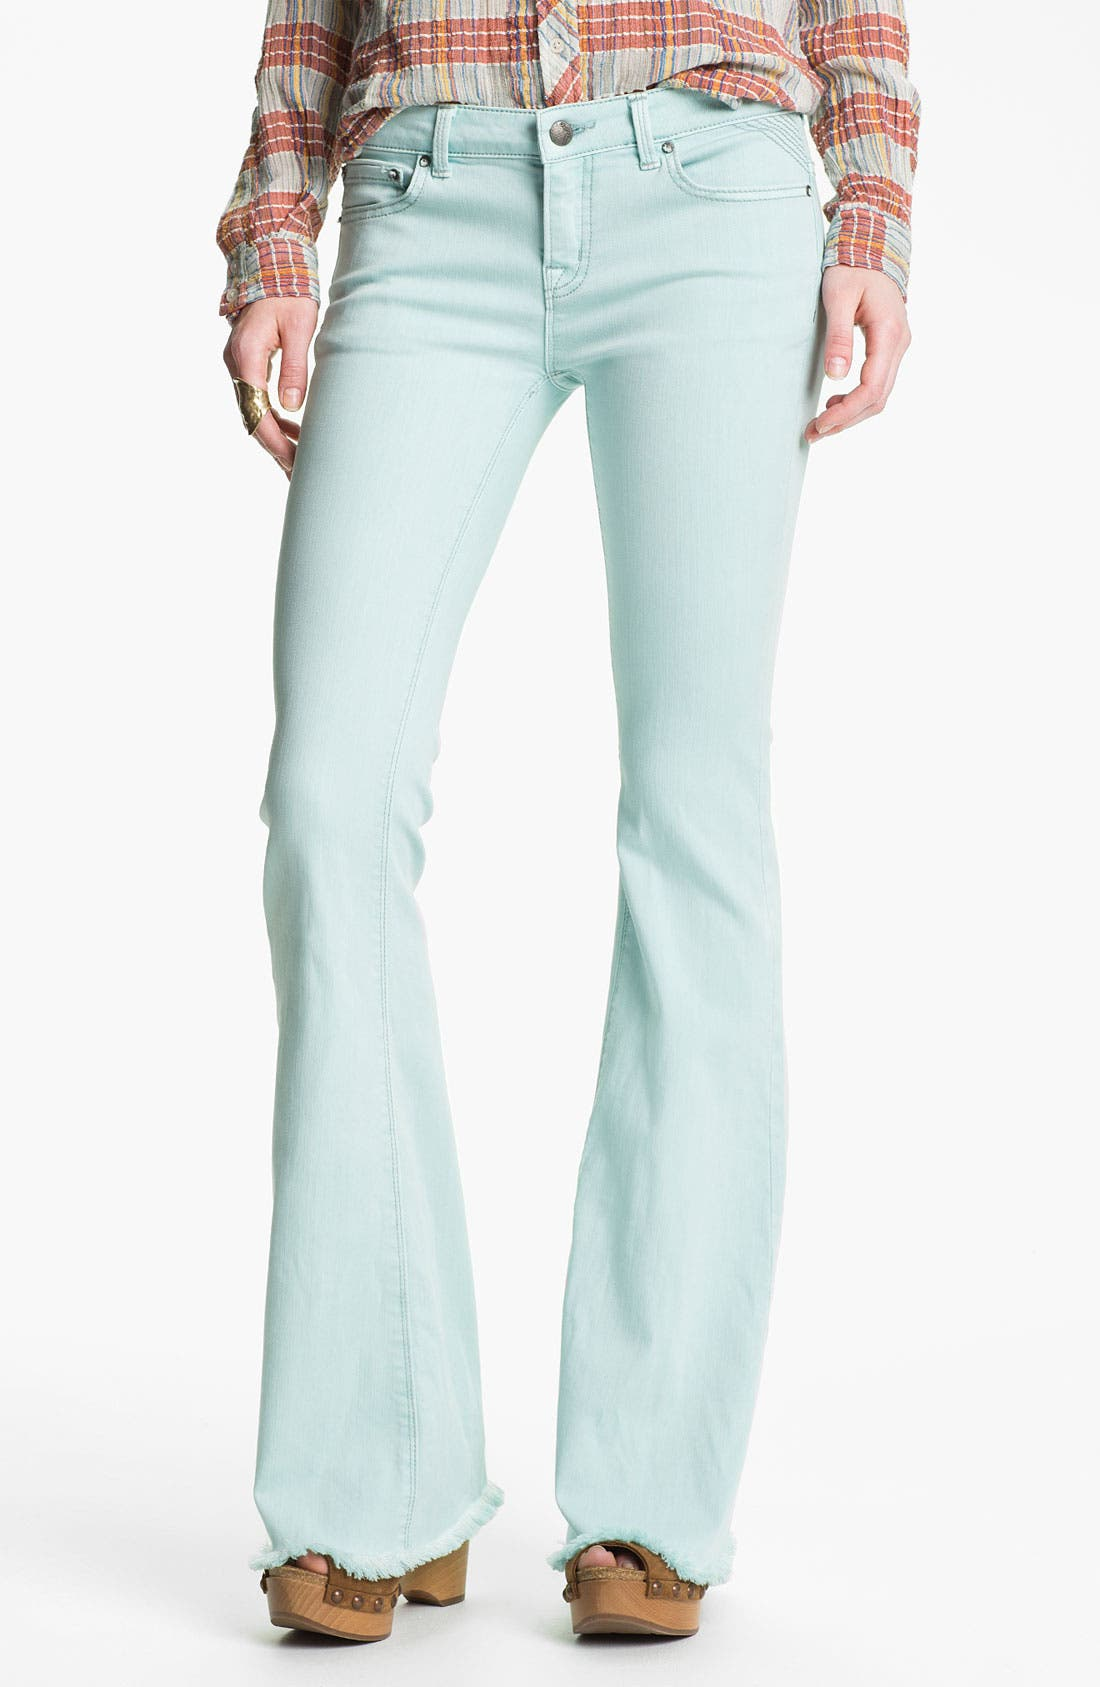 Main Image - Free People 'Millennium' Colored Denim Bootcut Jeans (Pale Blue)